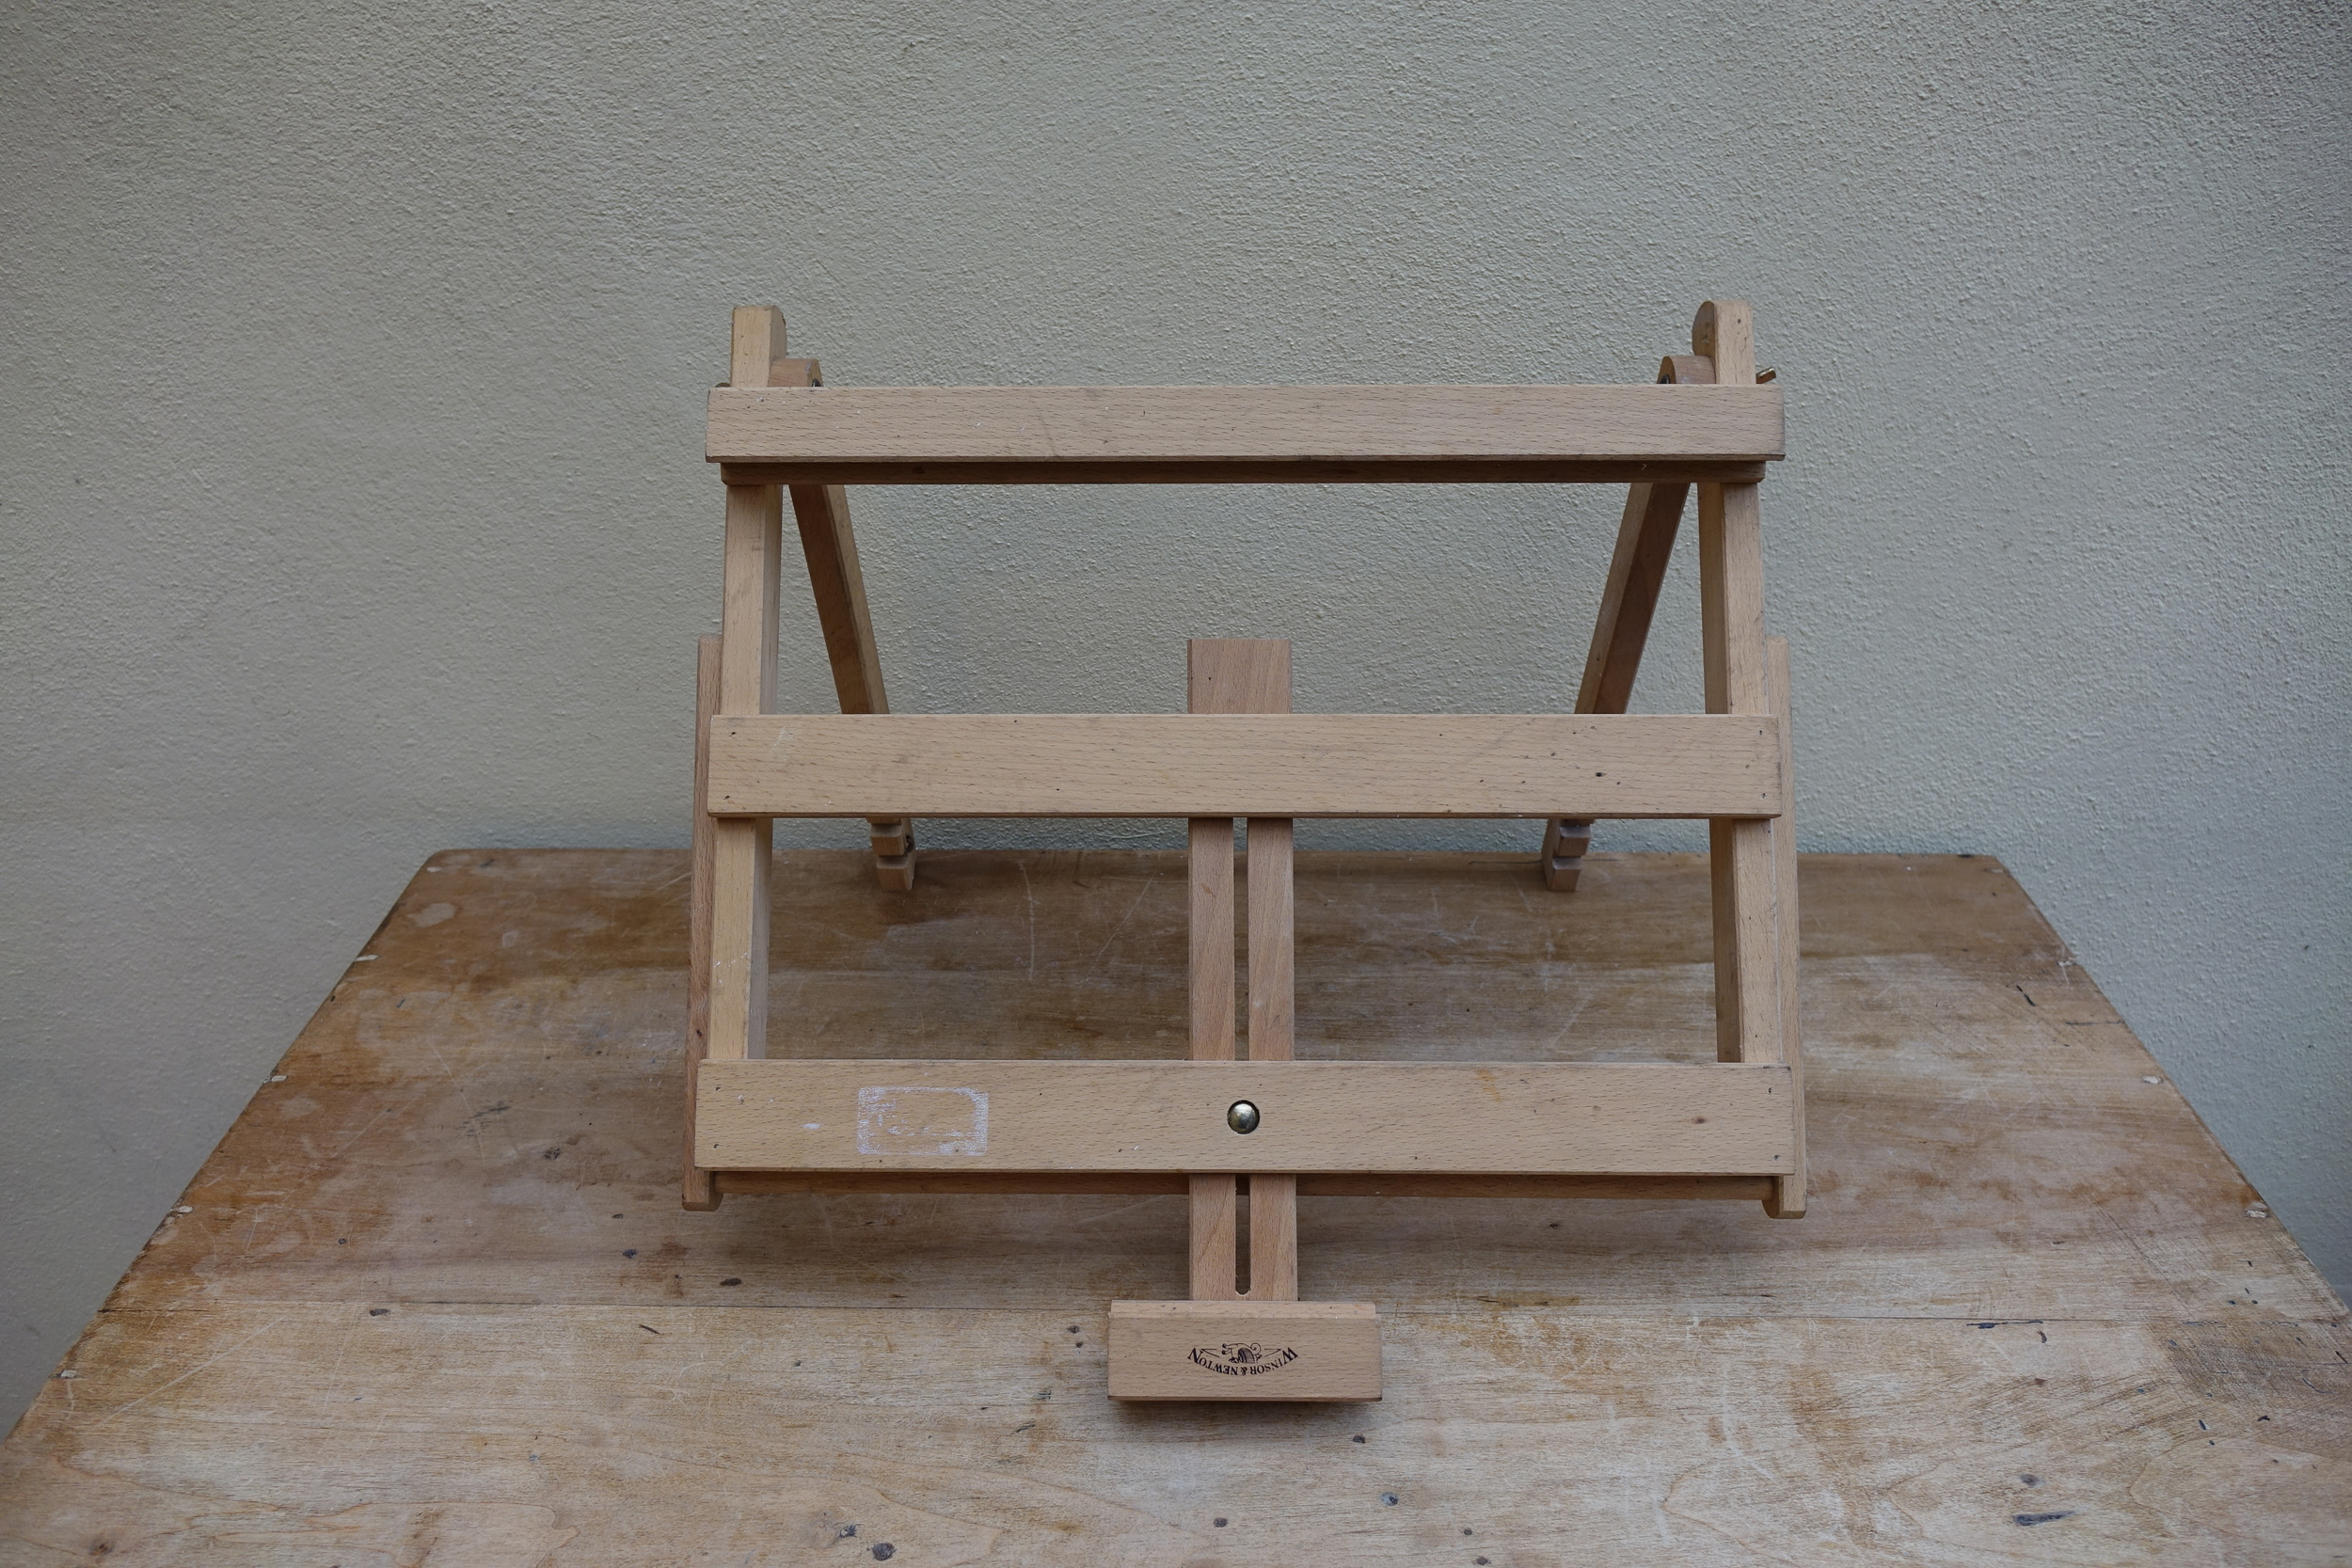 Table top easel - £4